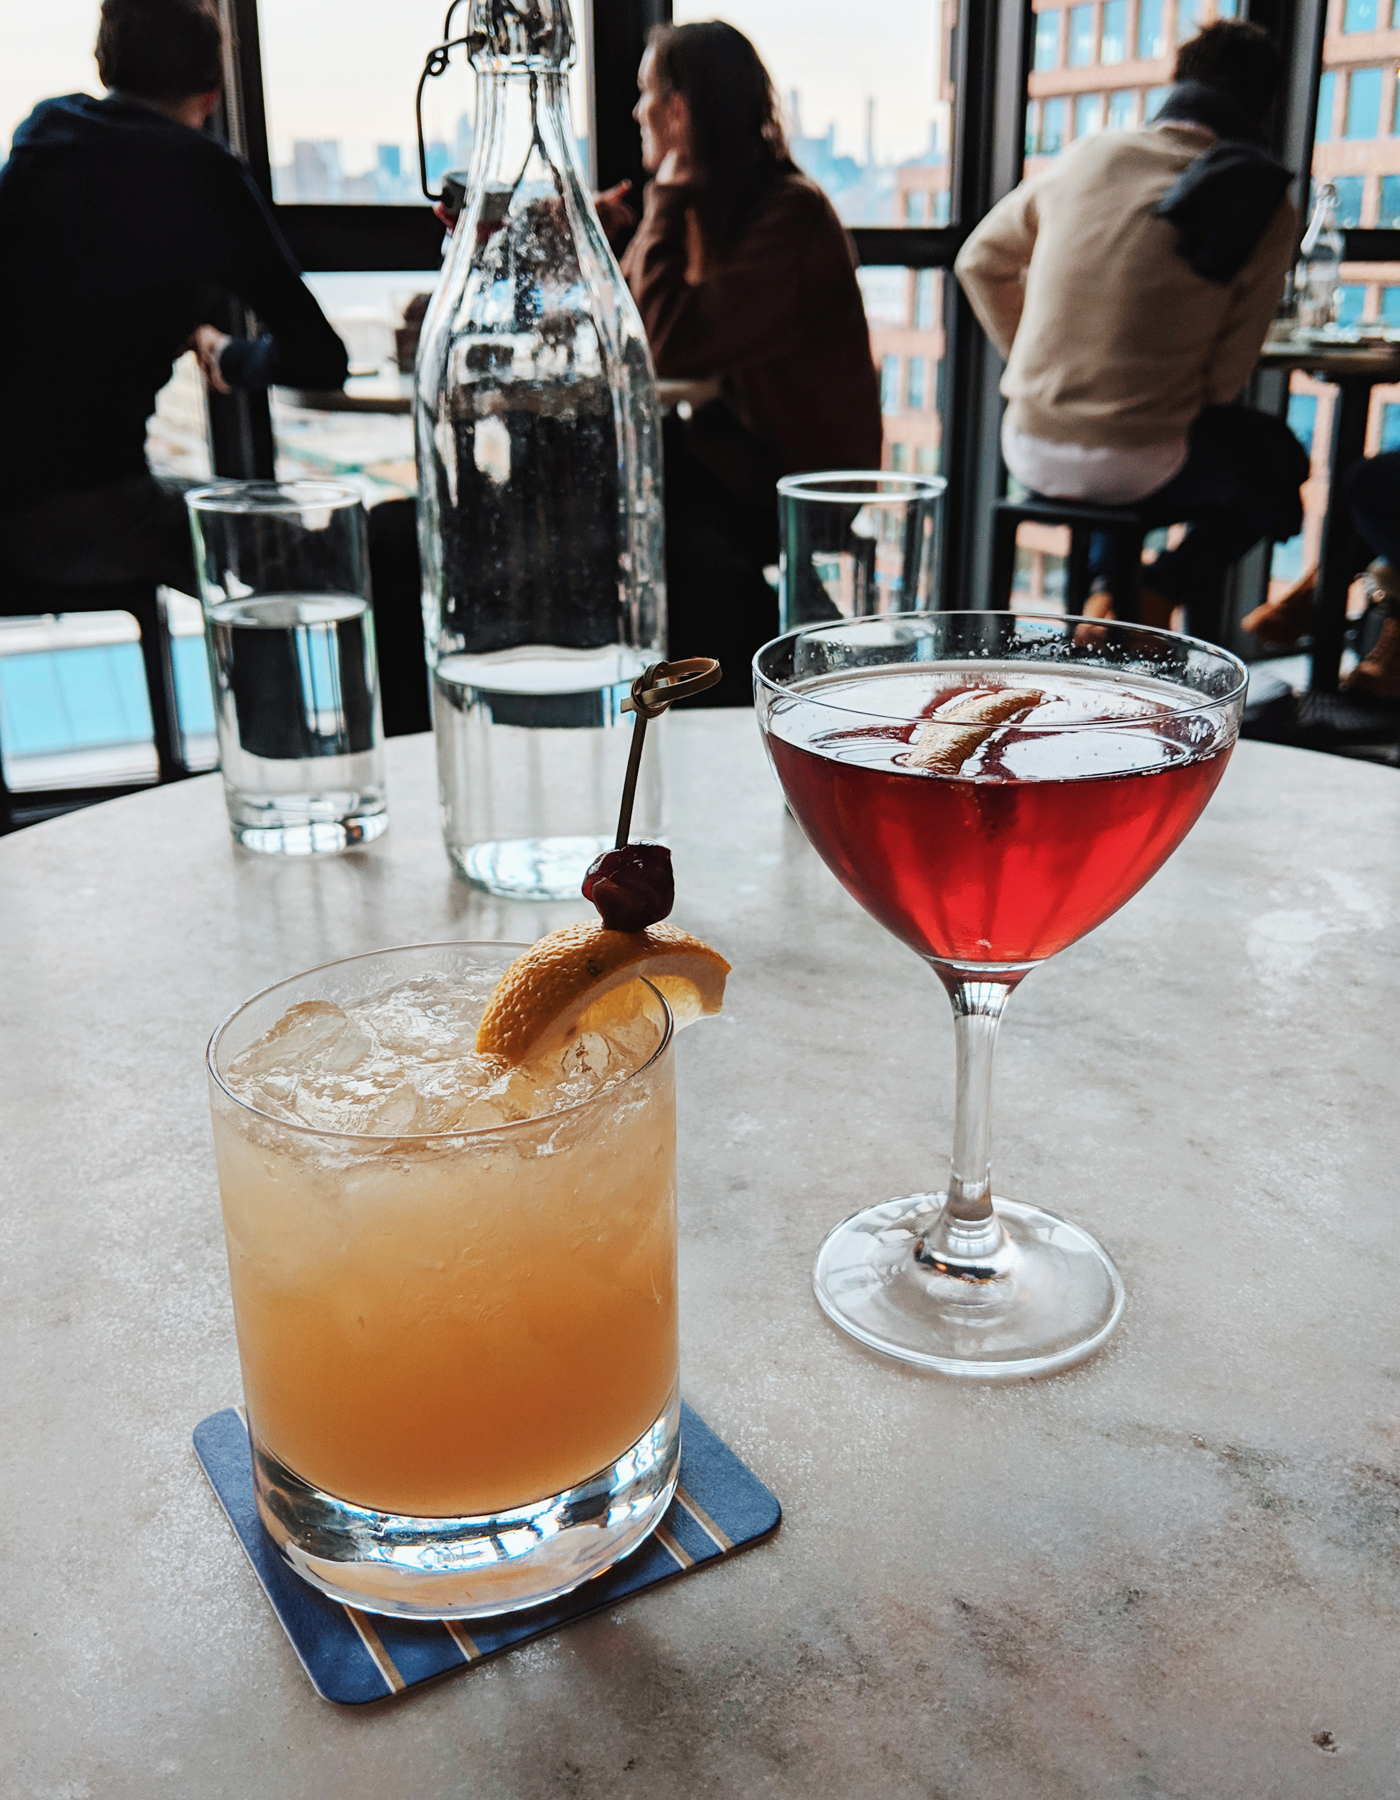 The Wythe Hotel bar